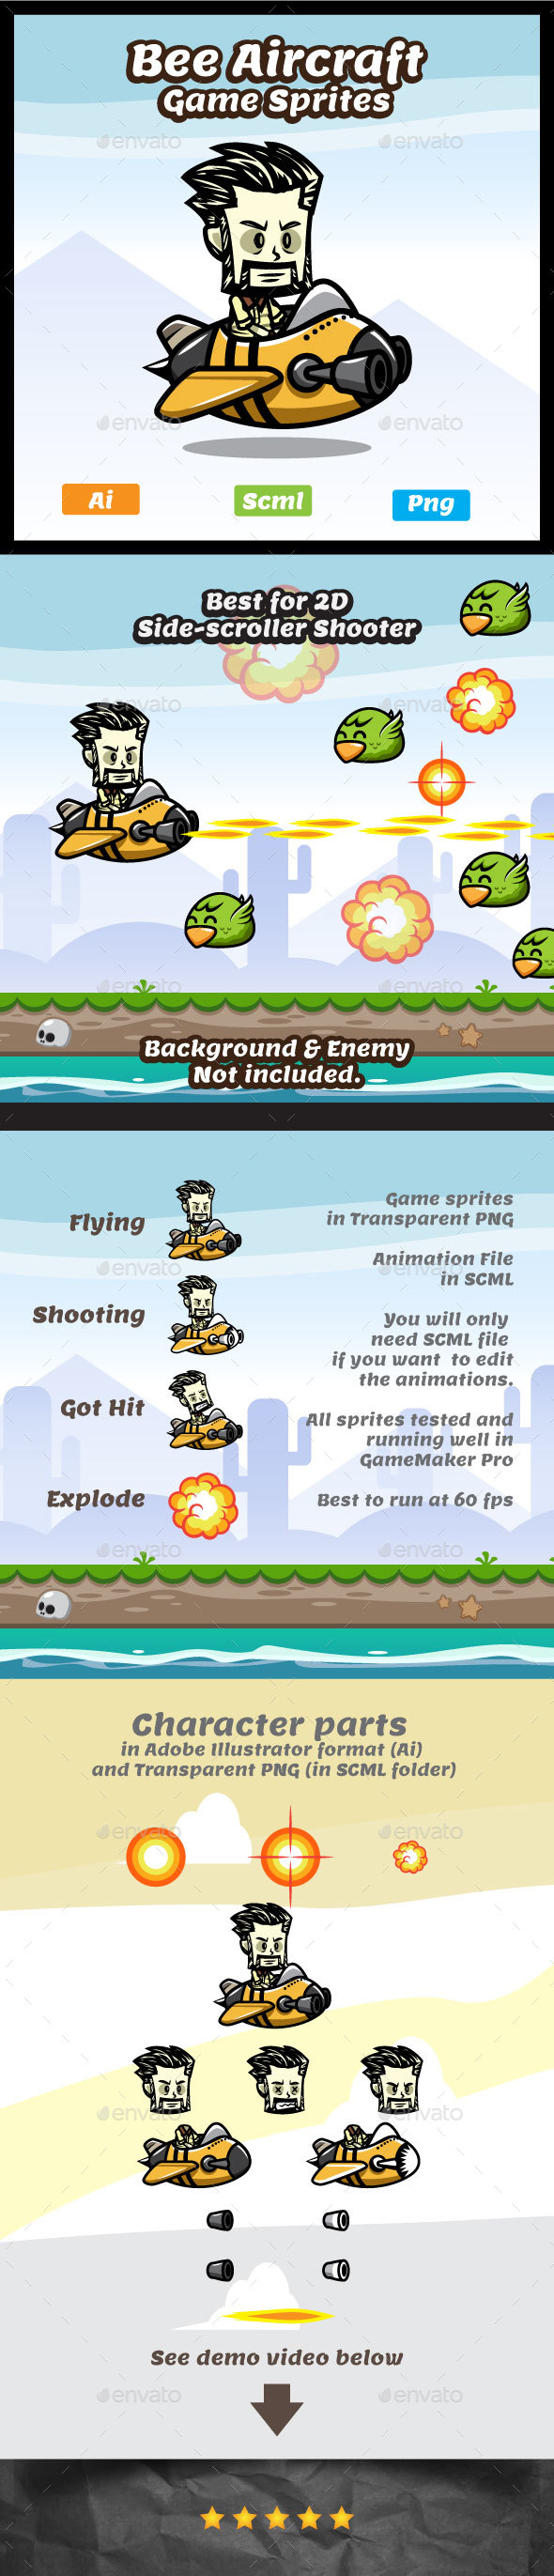 Male Pilot Game Character - Bee Aircraft Sprites - Sprites Game Assets